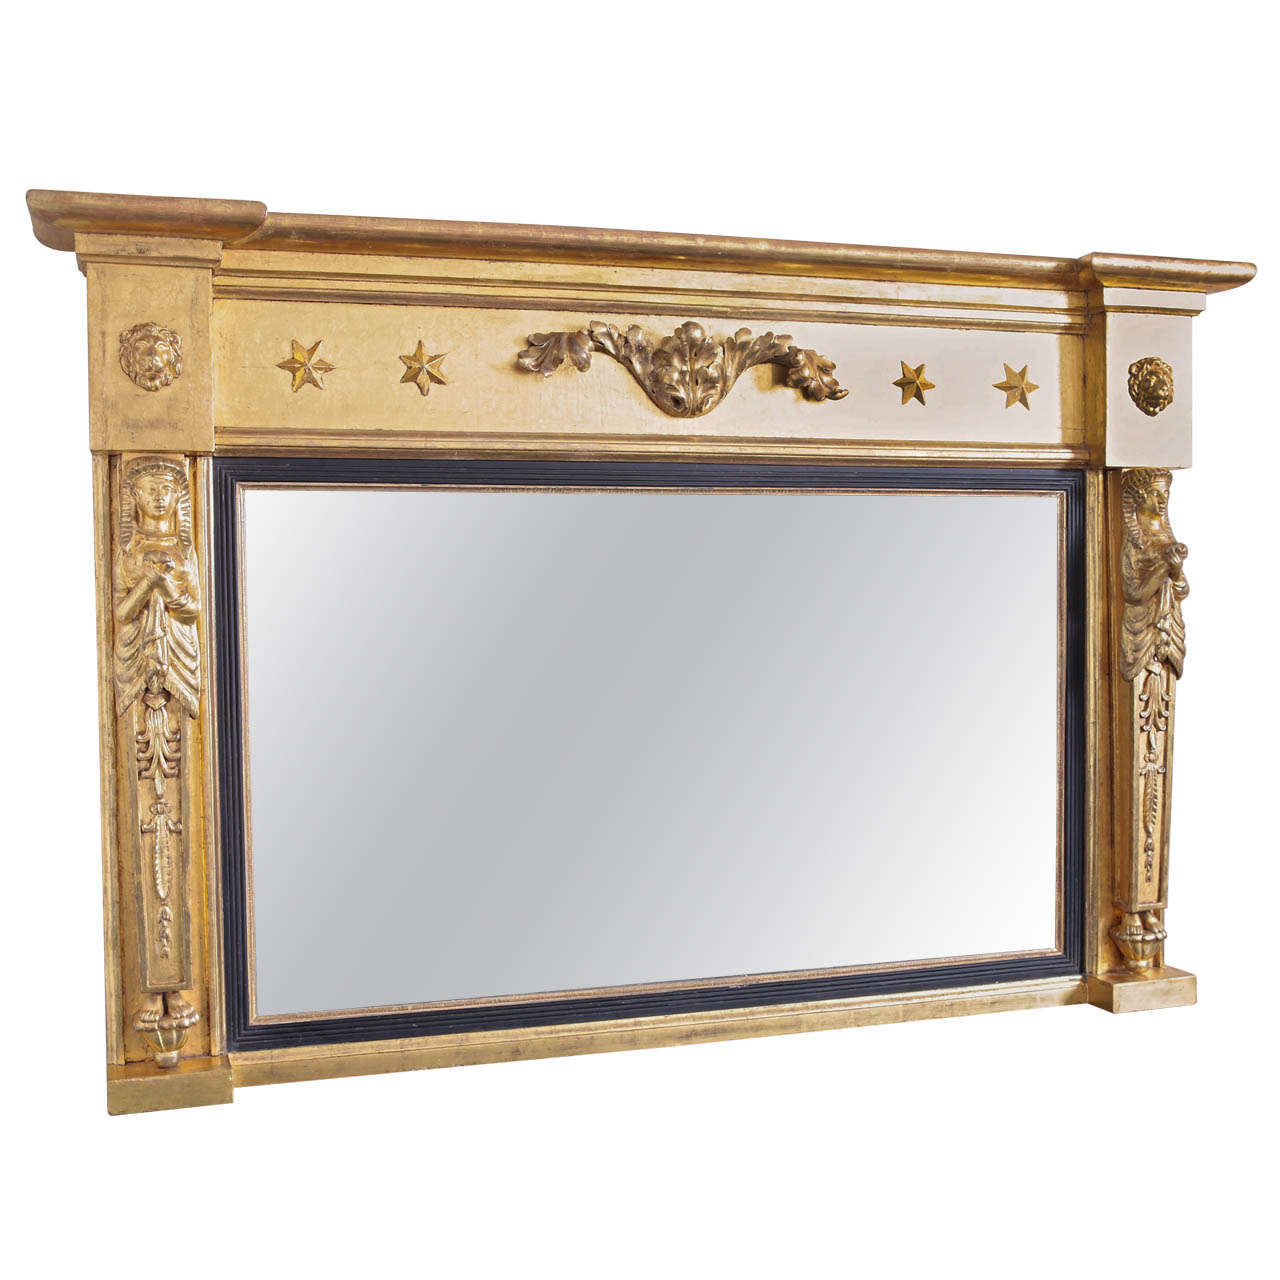 Regency water gilded over mantle mirror for sale at 1stdibs for Mantel mirrors